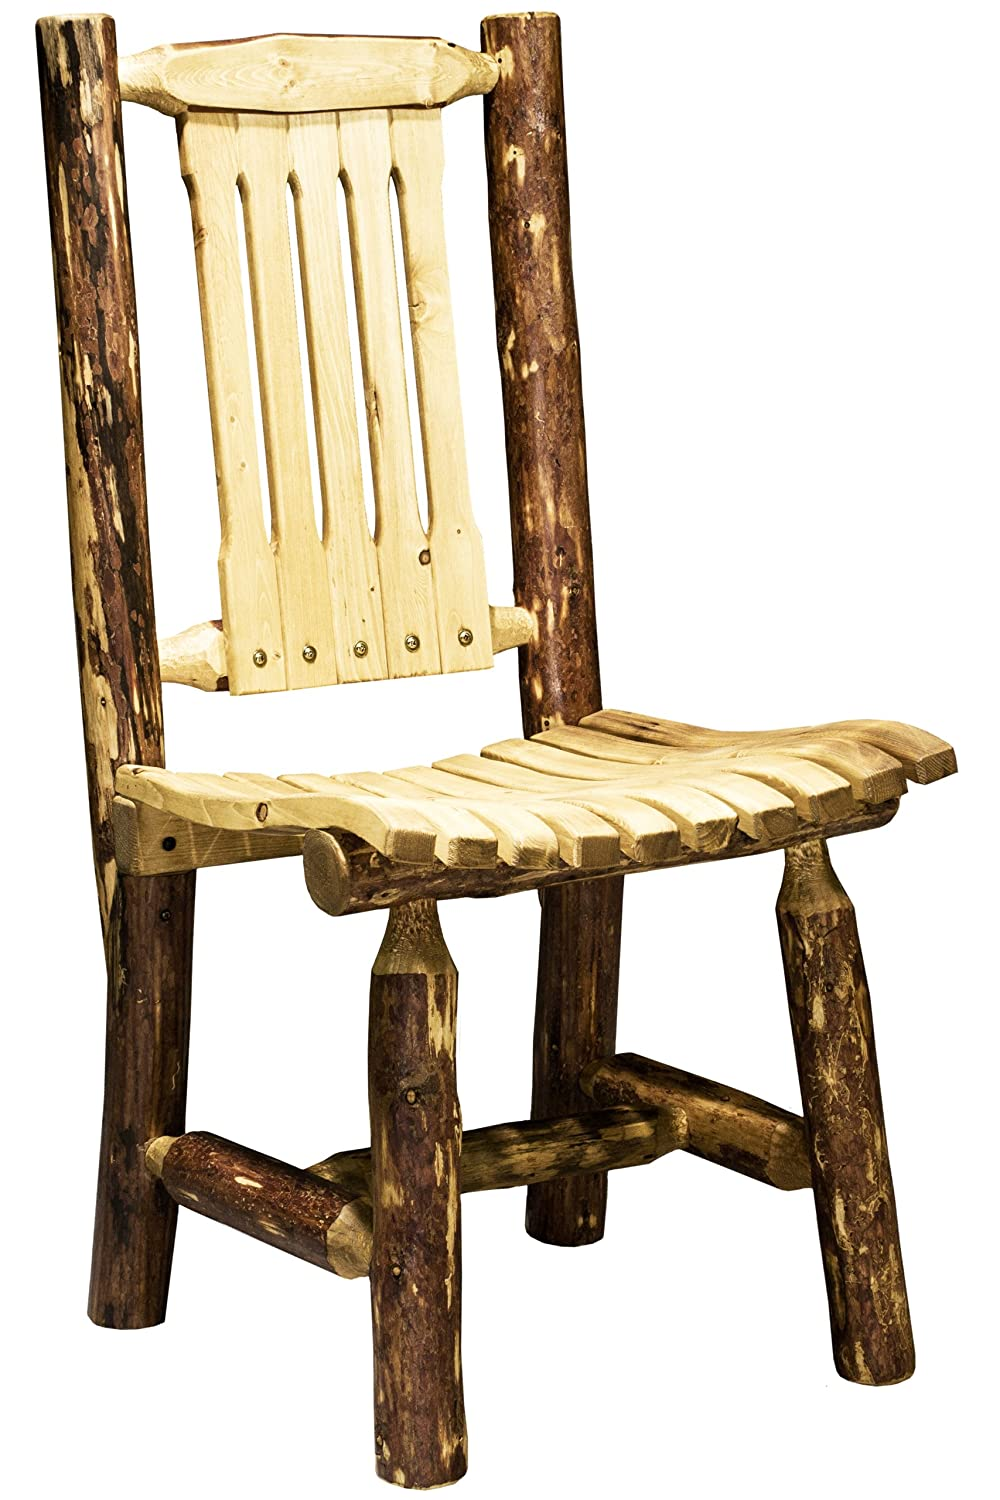 Teak Wood Chippendale Outdoor Patio Arm Chair, Made from Solid A-Grade Teak Wood